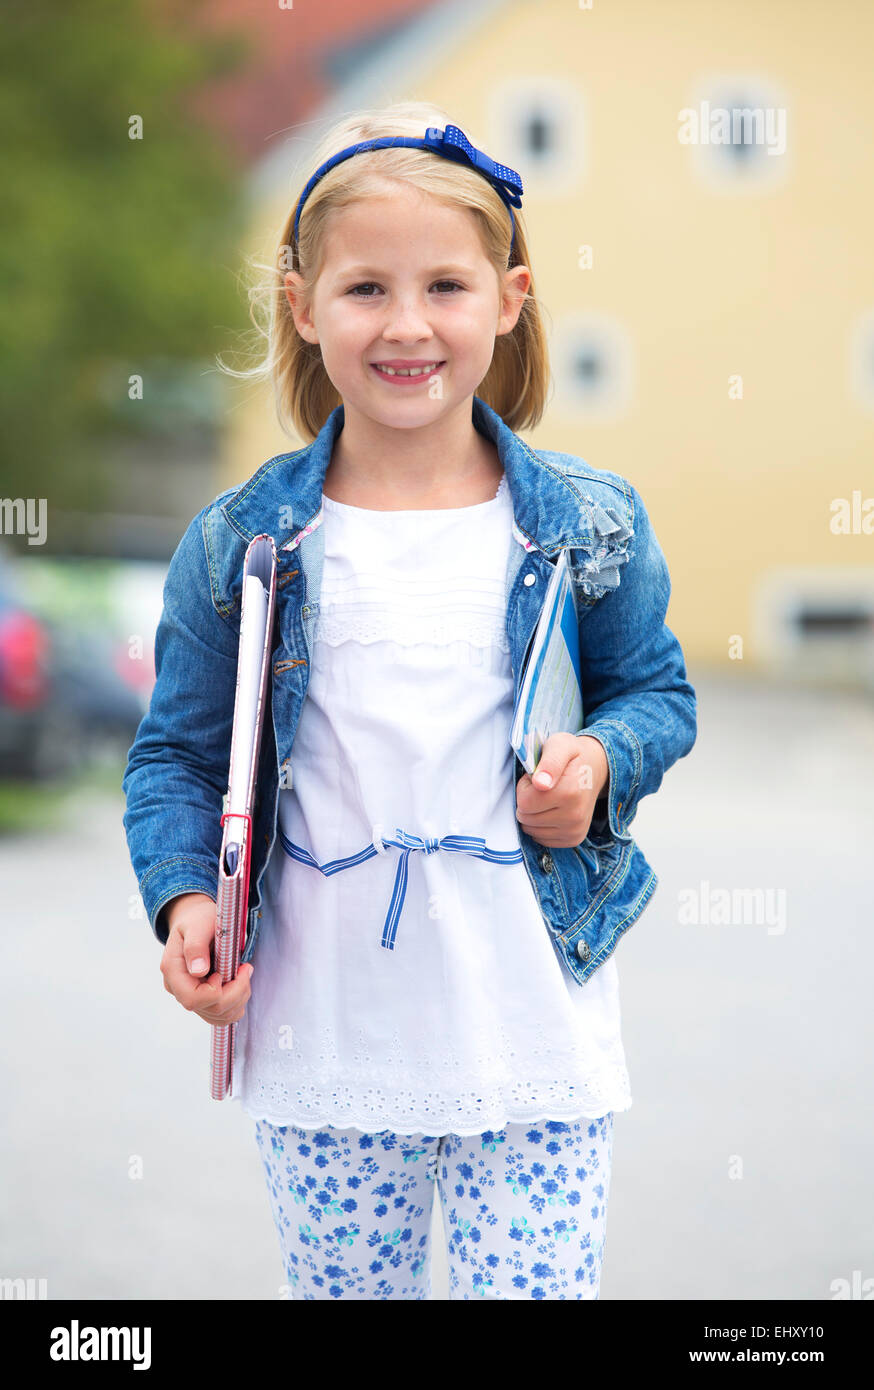 Portrait of smiling little girl with file and exercise book - Stock Image